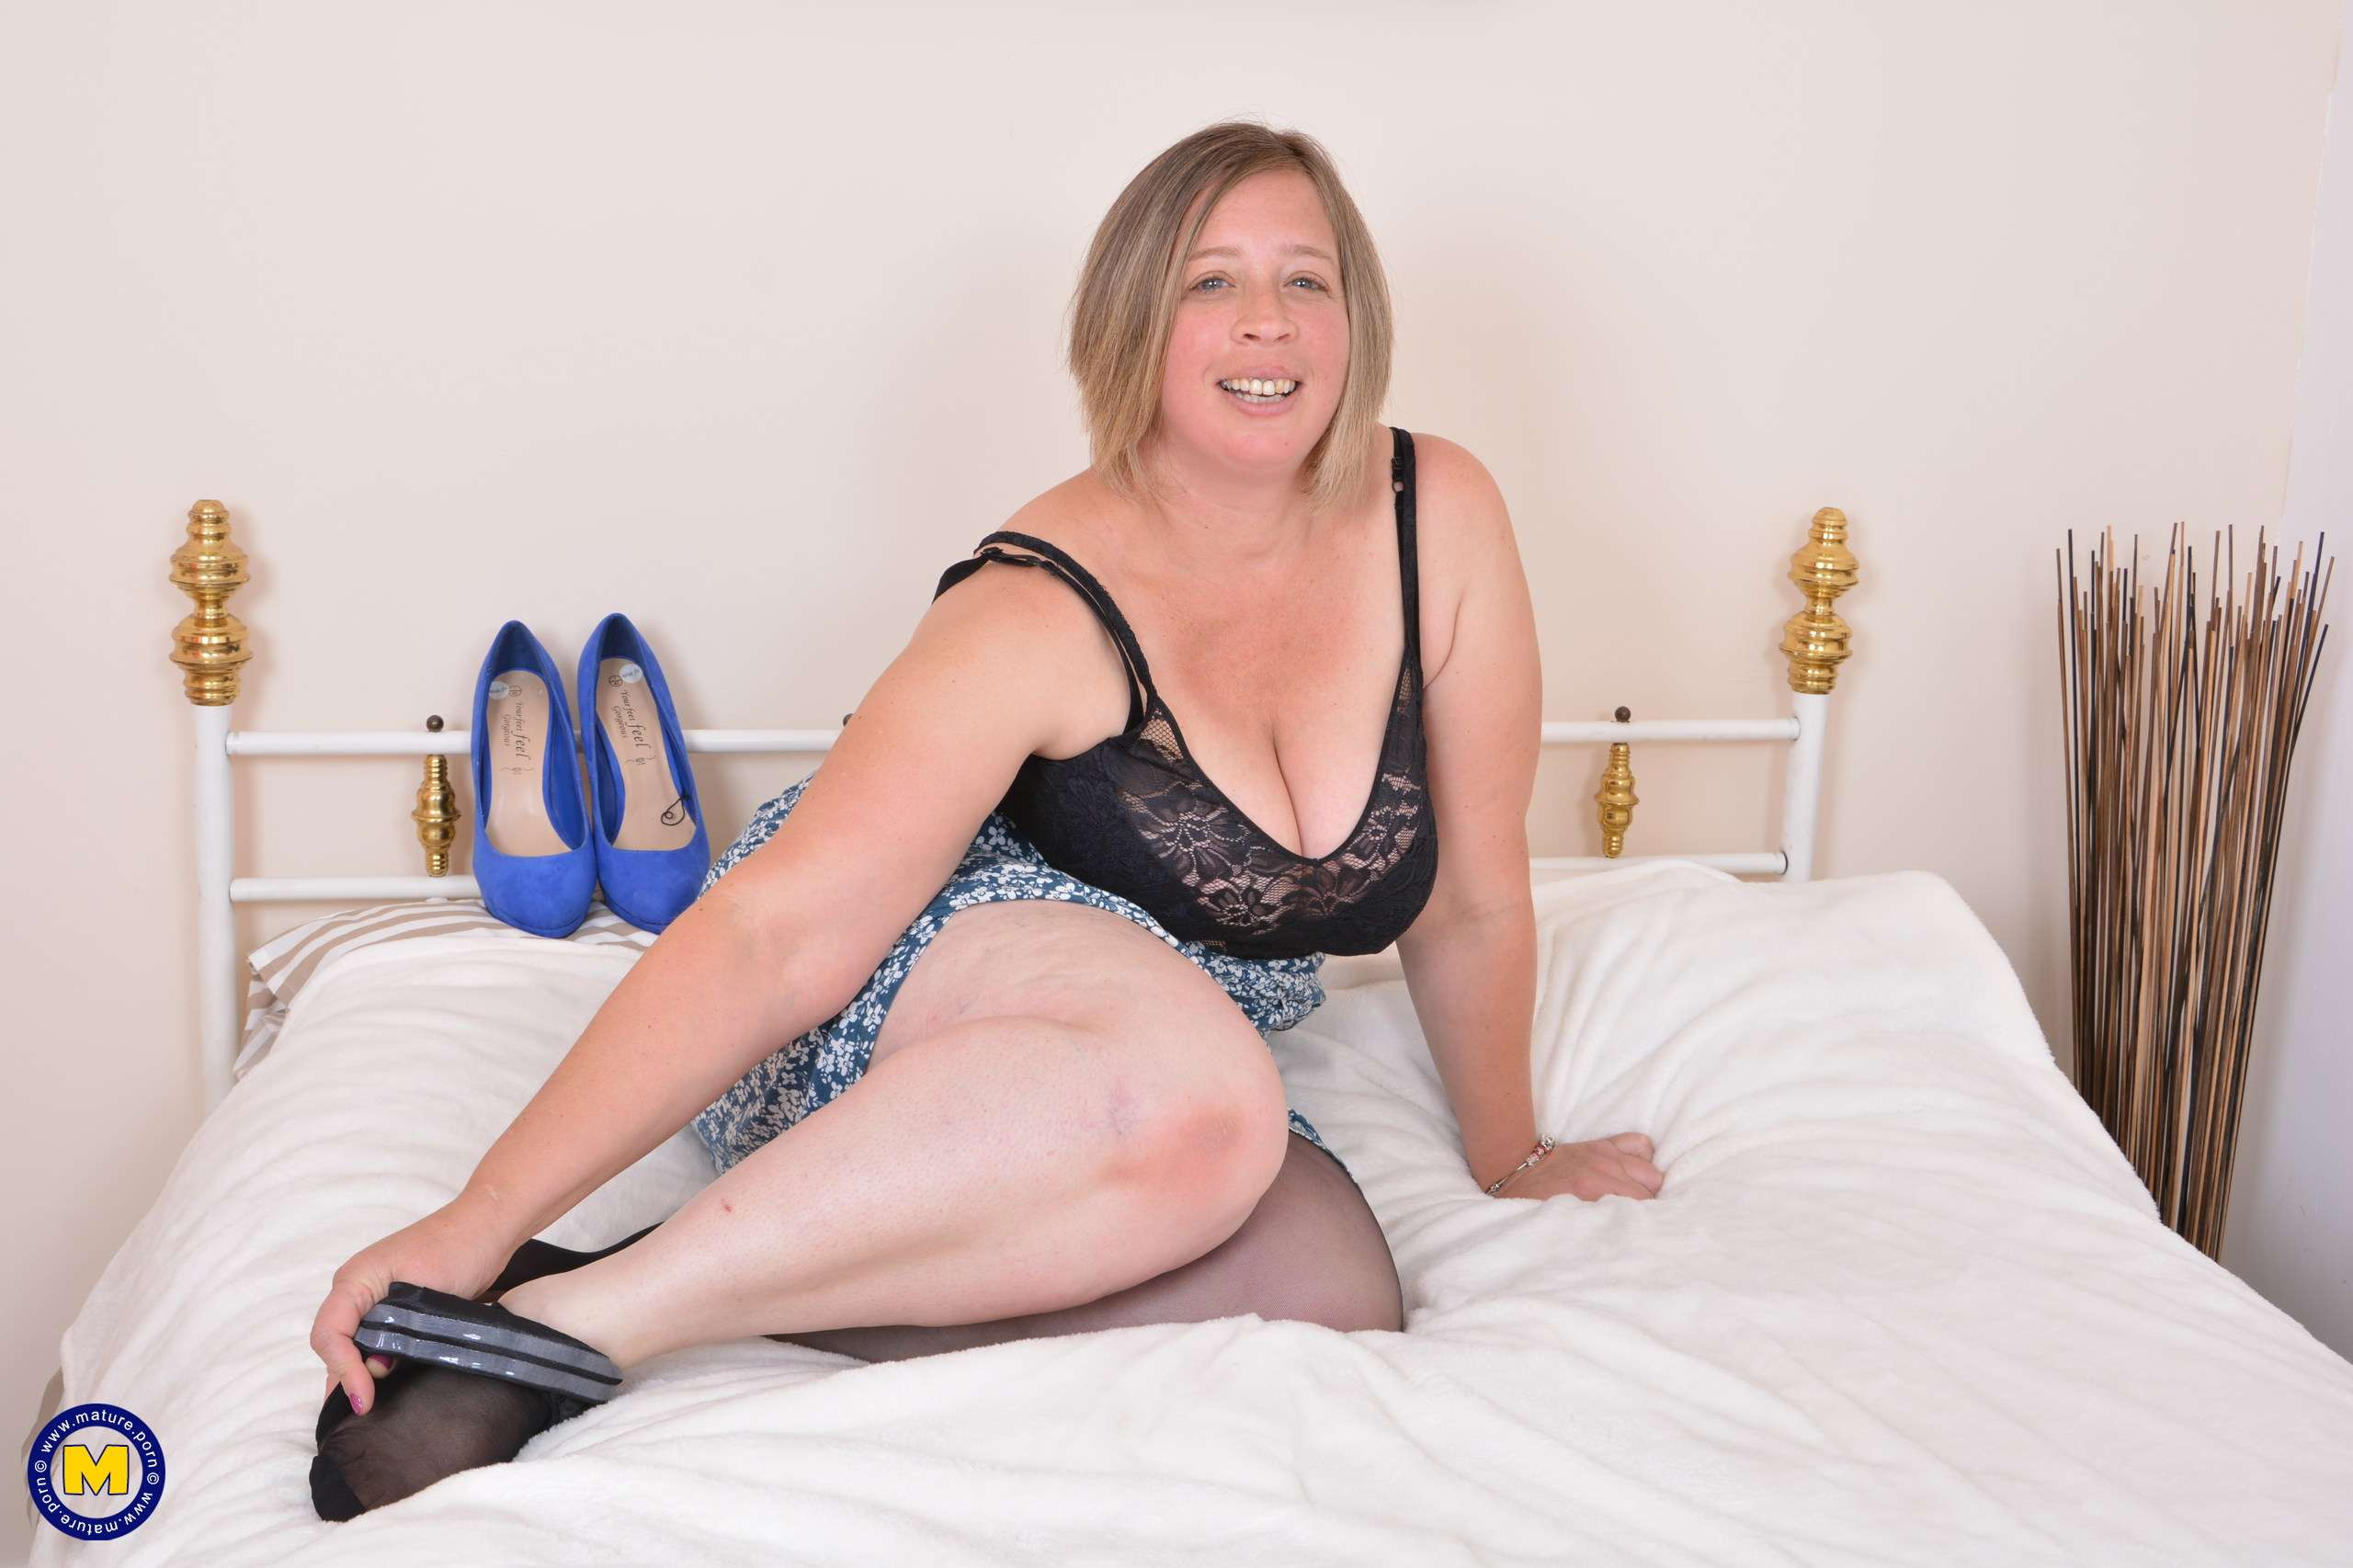 Speedy bee undresses and plays with her pussy